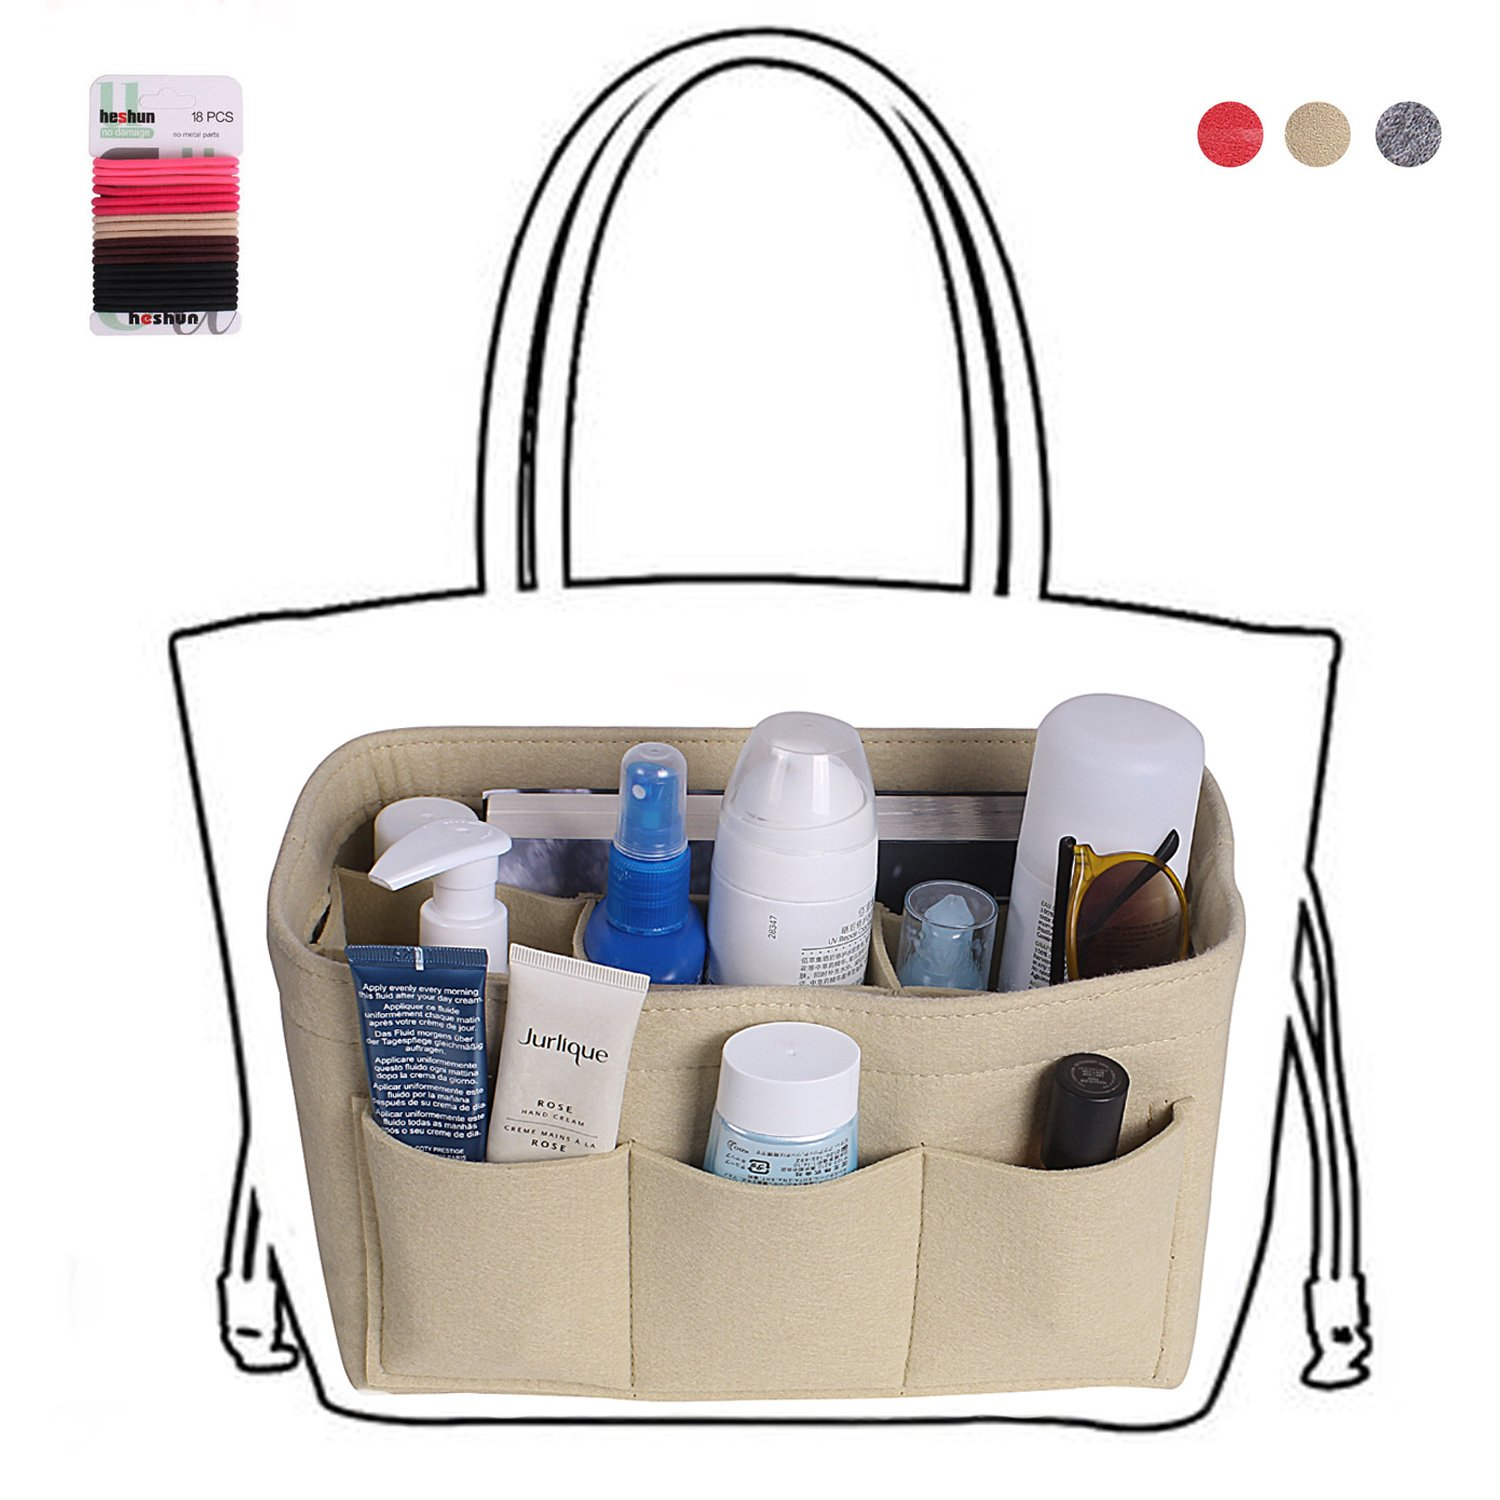 Felt fabric bag in bag purse organizer insert for handbags/tote (Large, Beige) by Meeeno (Image #4)